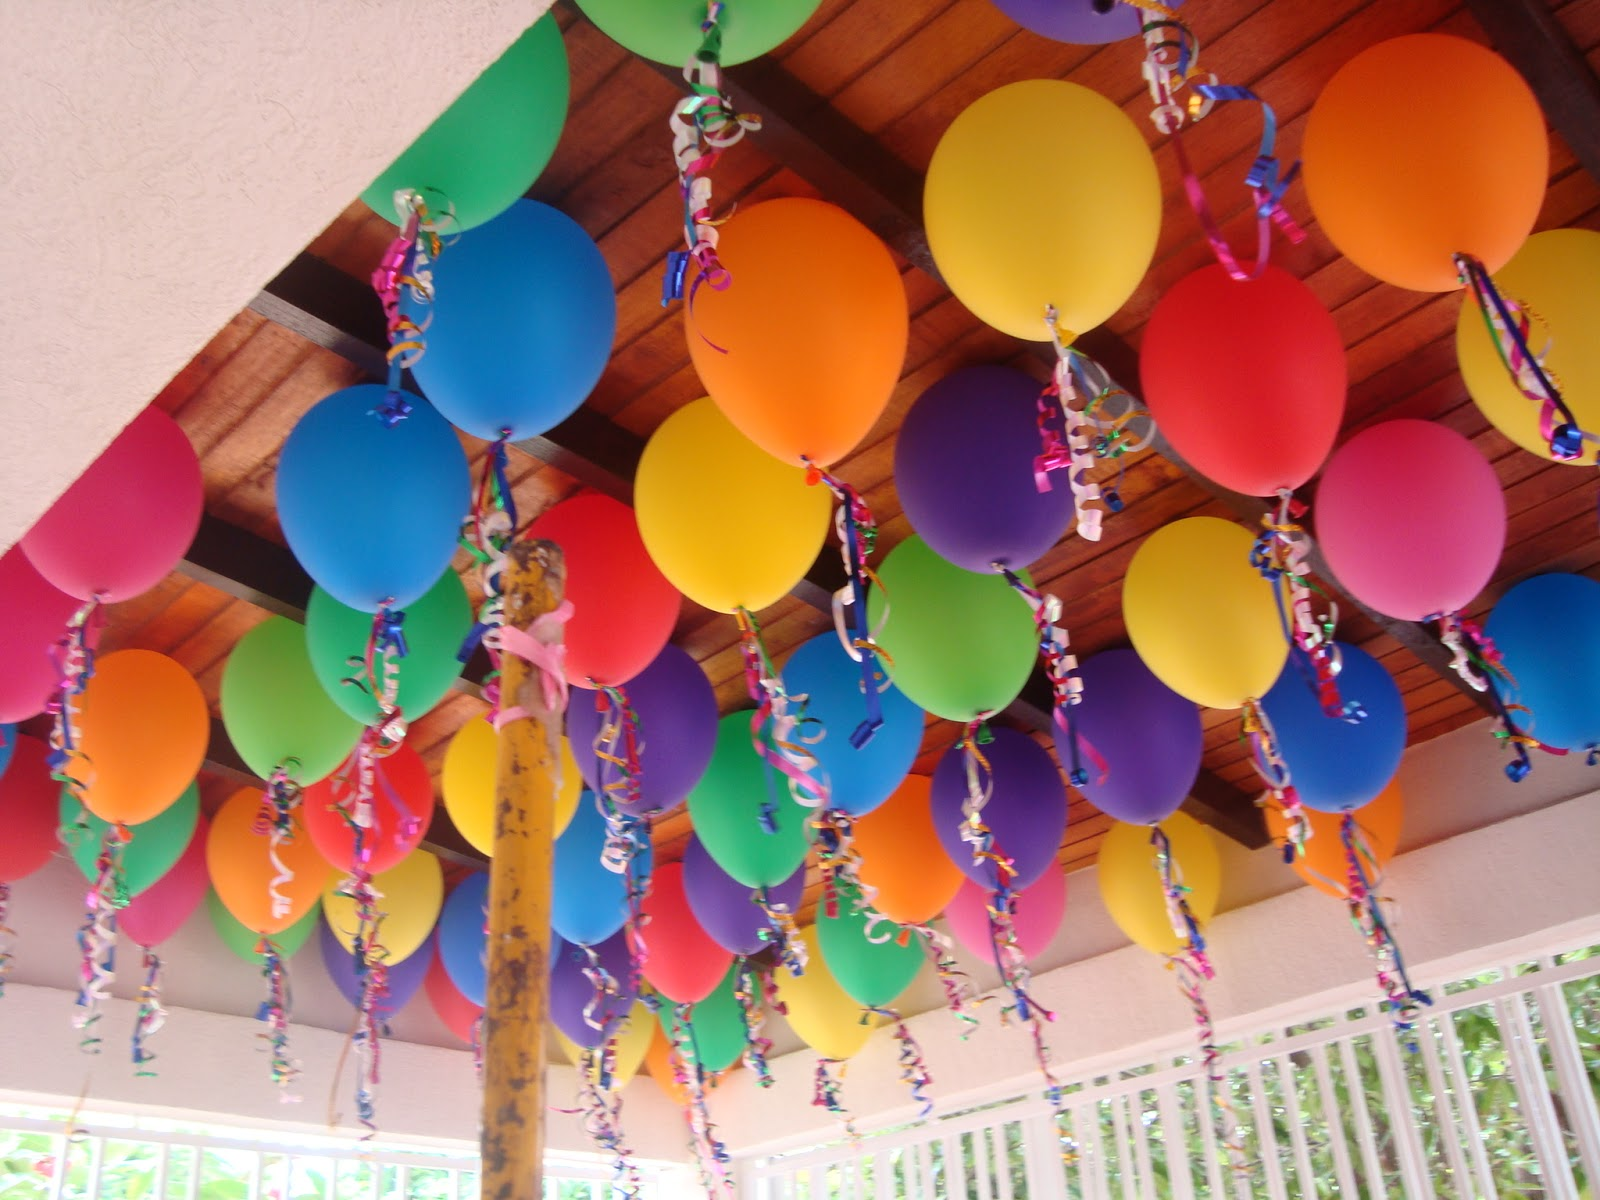 Dise os e im genes decoraciones con globos for Ver decoraciones